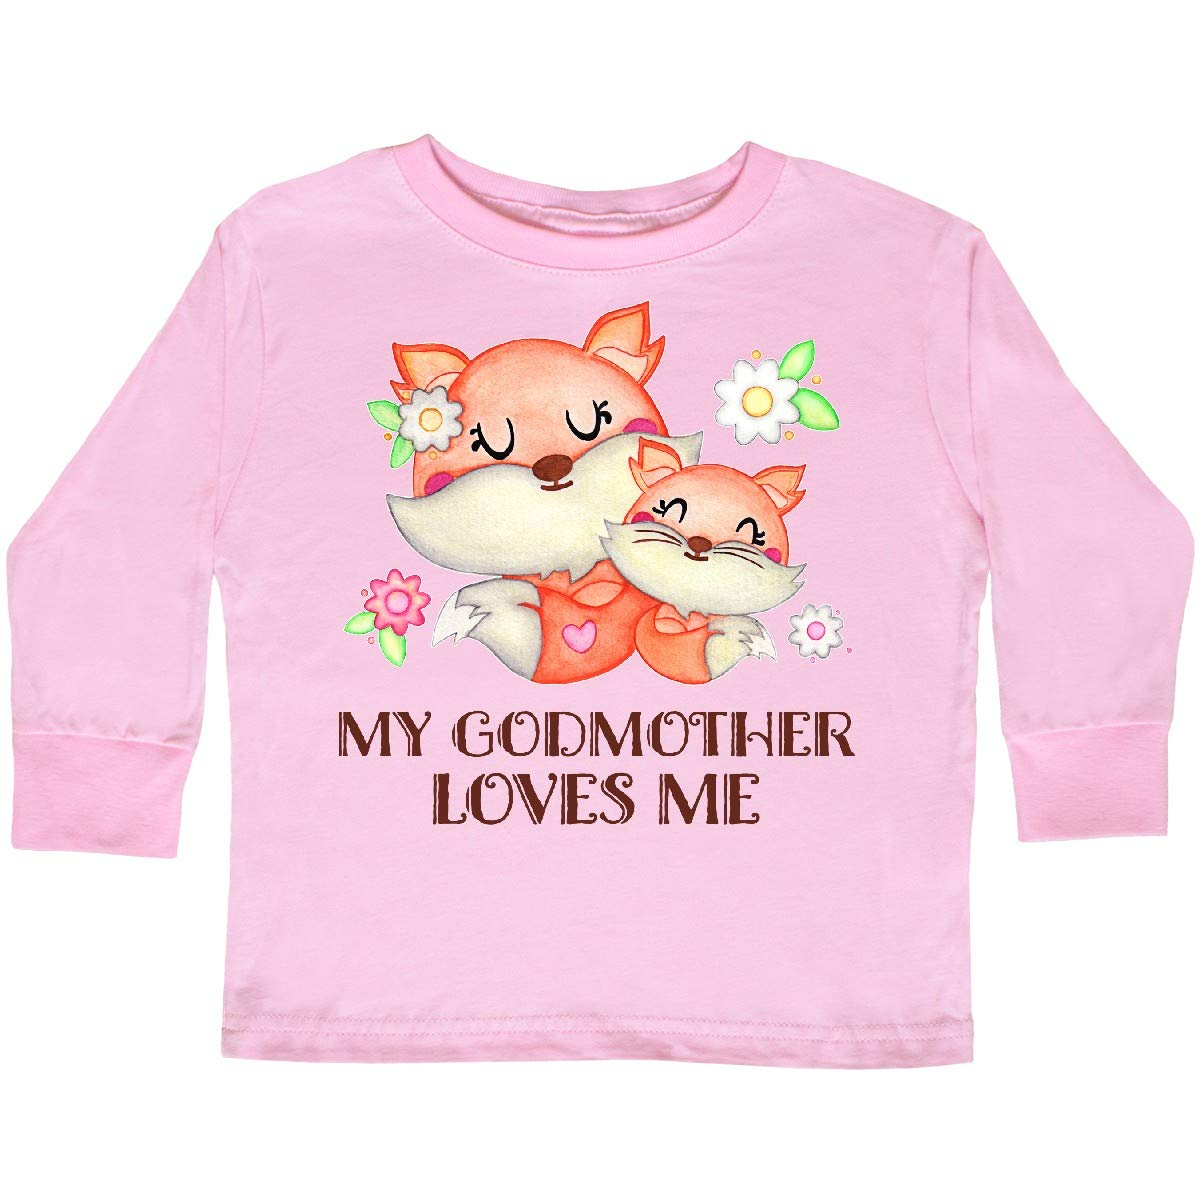 727a1b17 Amazon.com: inktastic - My Godmother Loves Me- Cute Fox Toddler Long Sleeve  T-Shirt 2f81c: Clothing